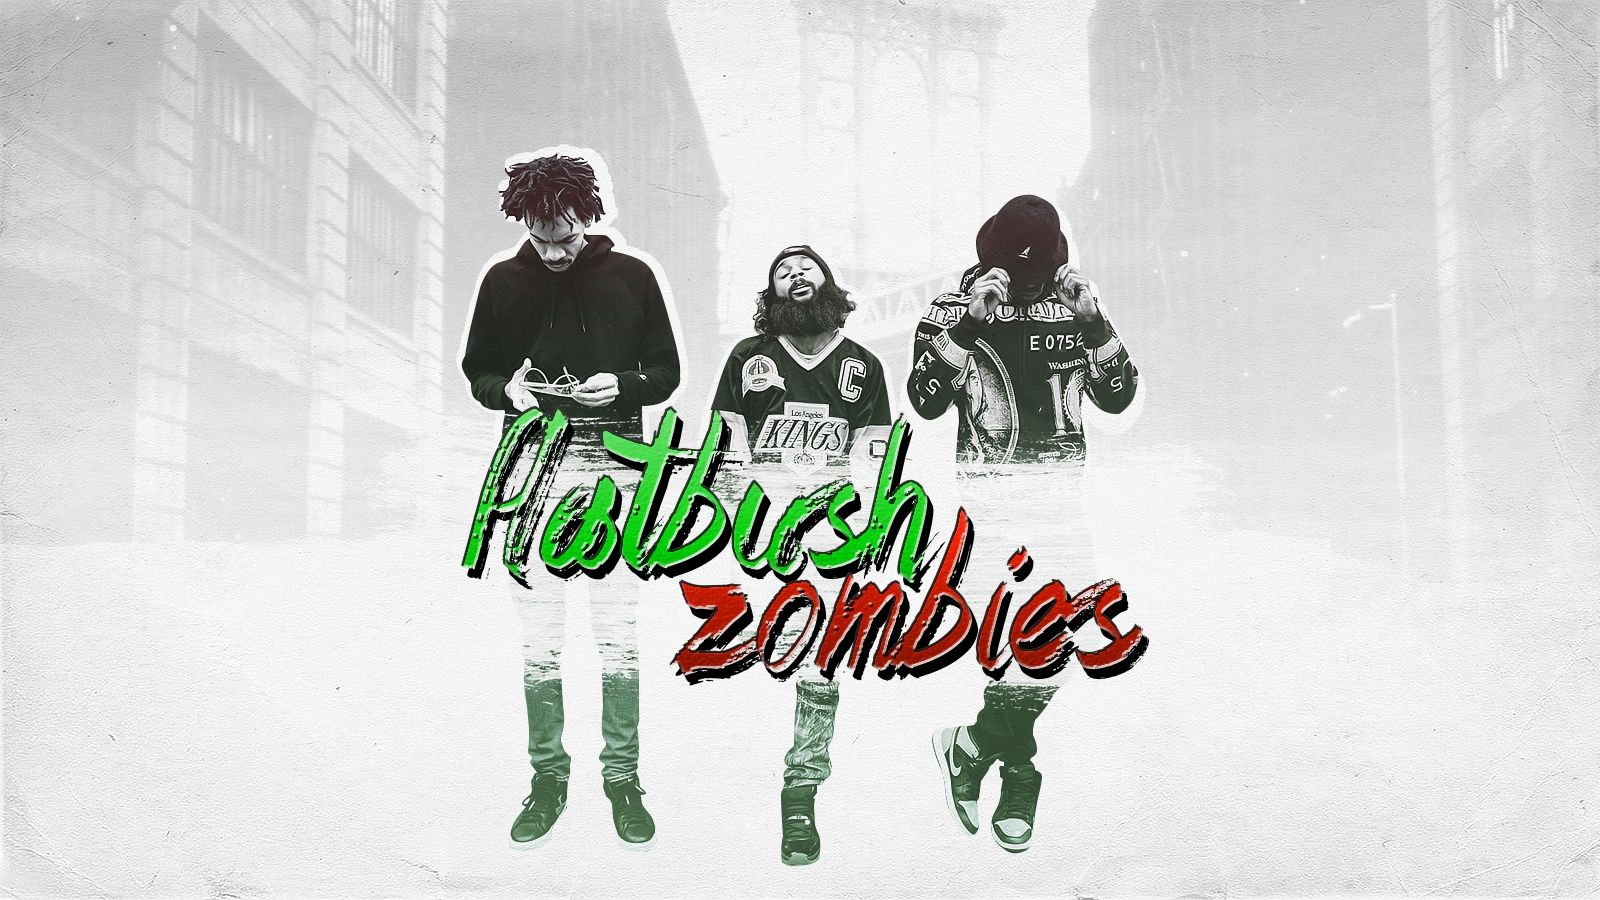 1600x900 Flatbush Zombies Wallpaper Iphone | giftsforsubs